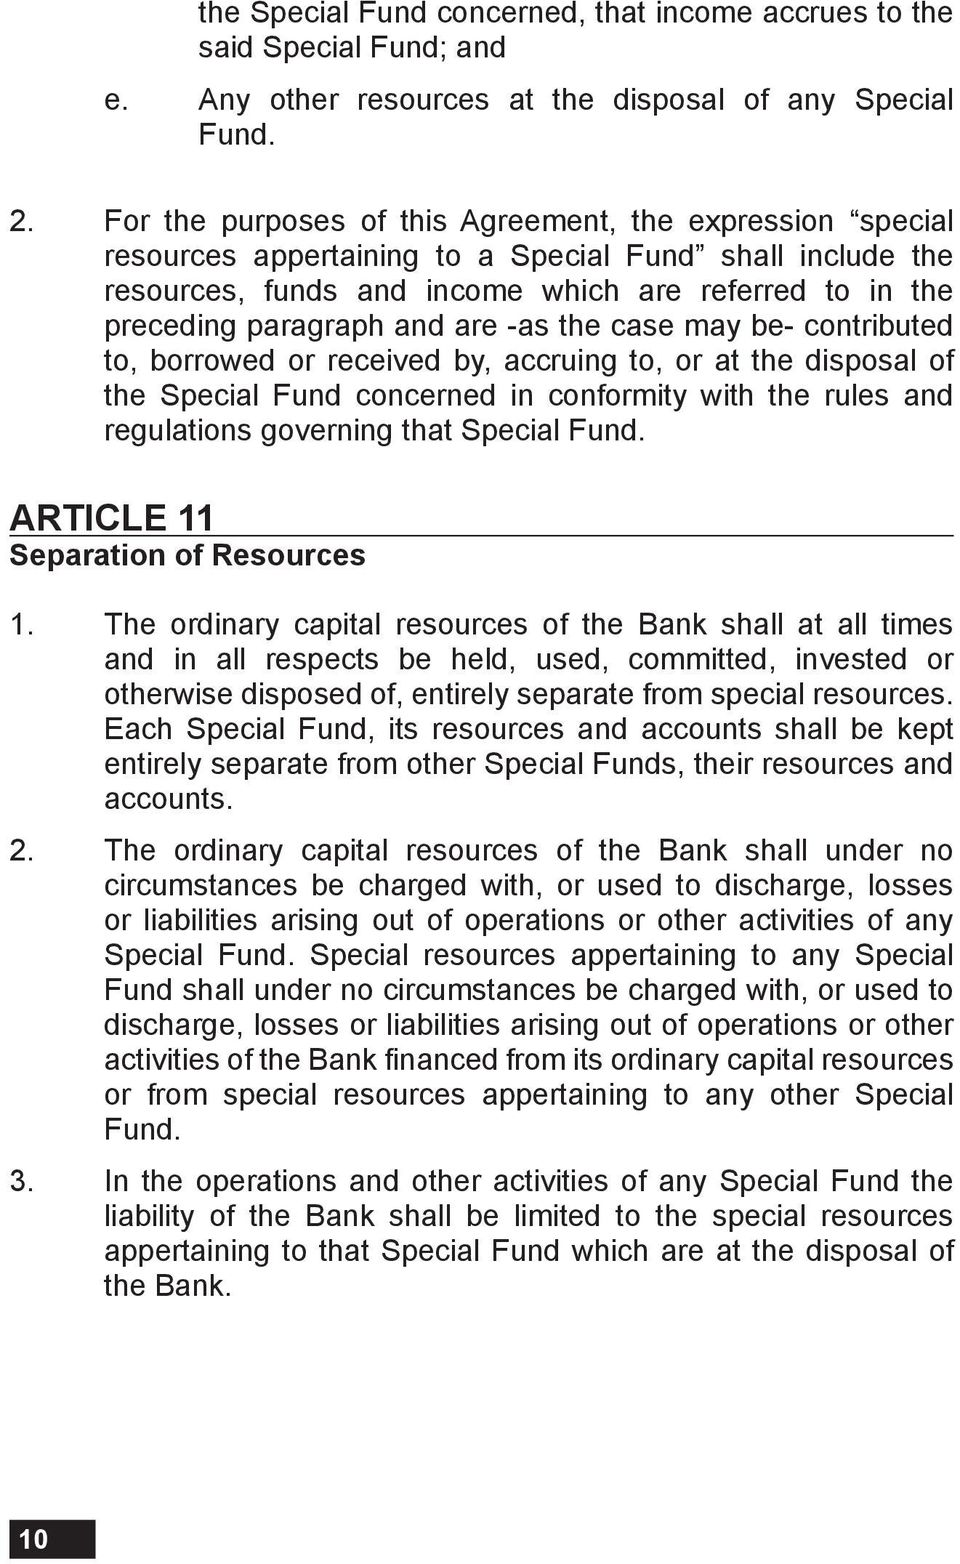 are -as the case may be- contributed to, borrowed or received by, accruing to, or at the disposal of the Special Fund concerned in conformity with the rules and regulations governing that Special